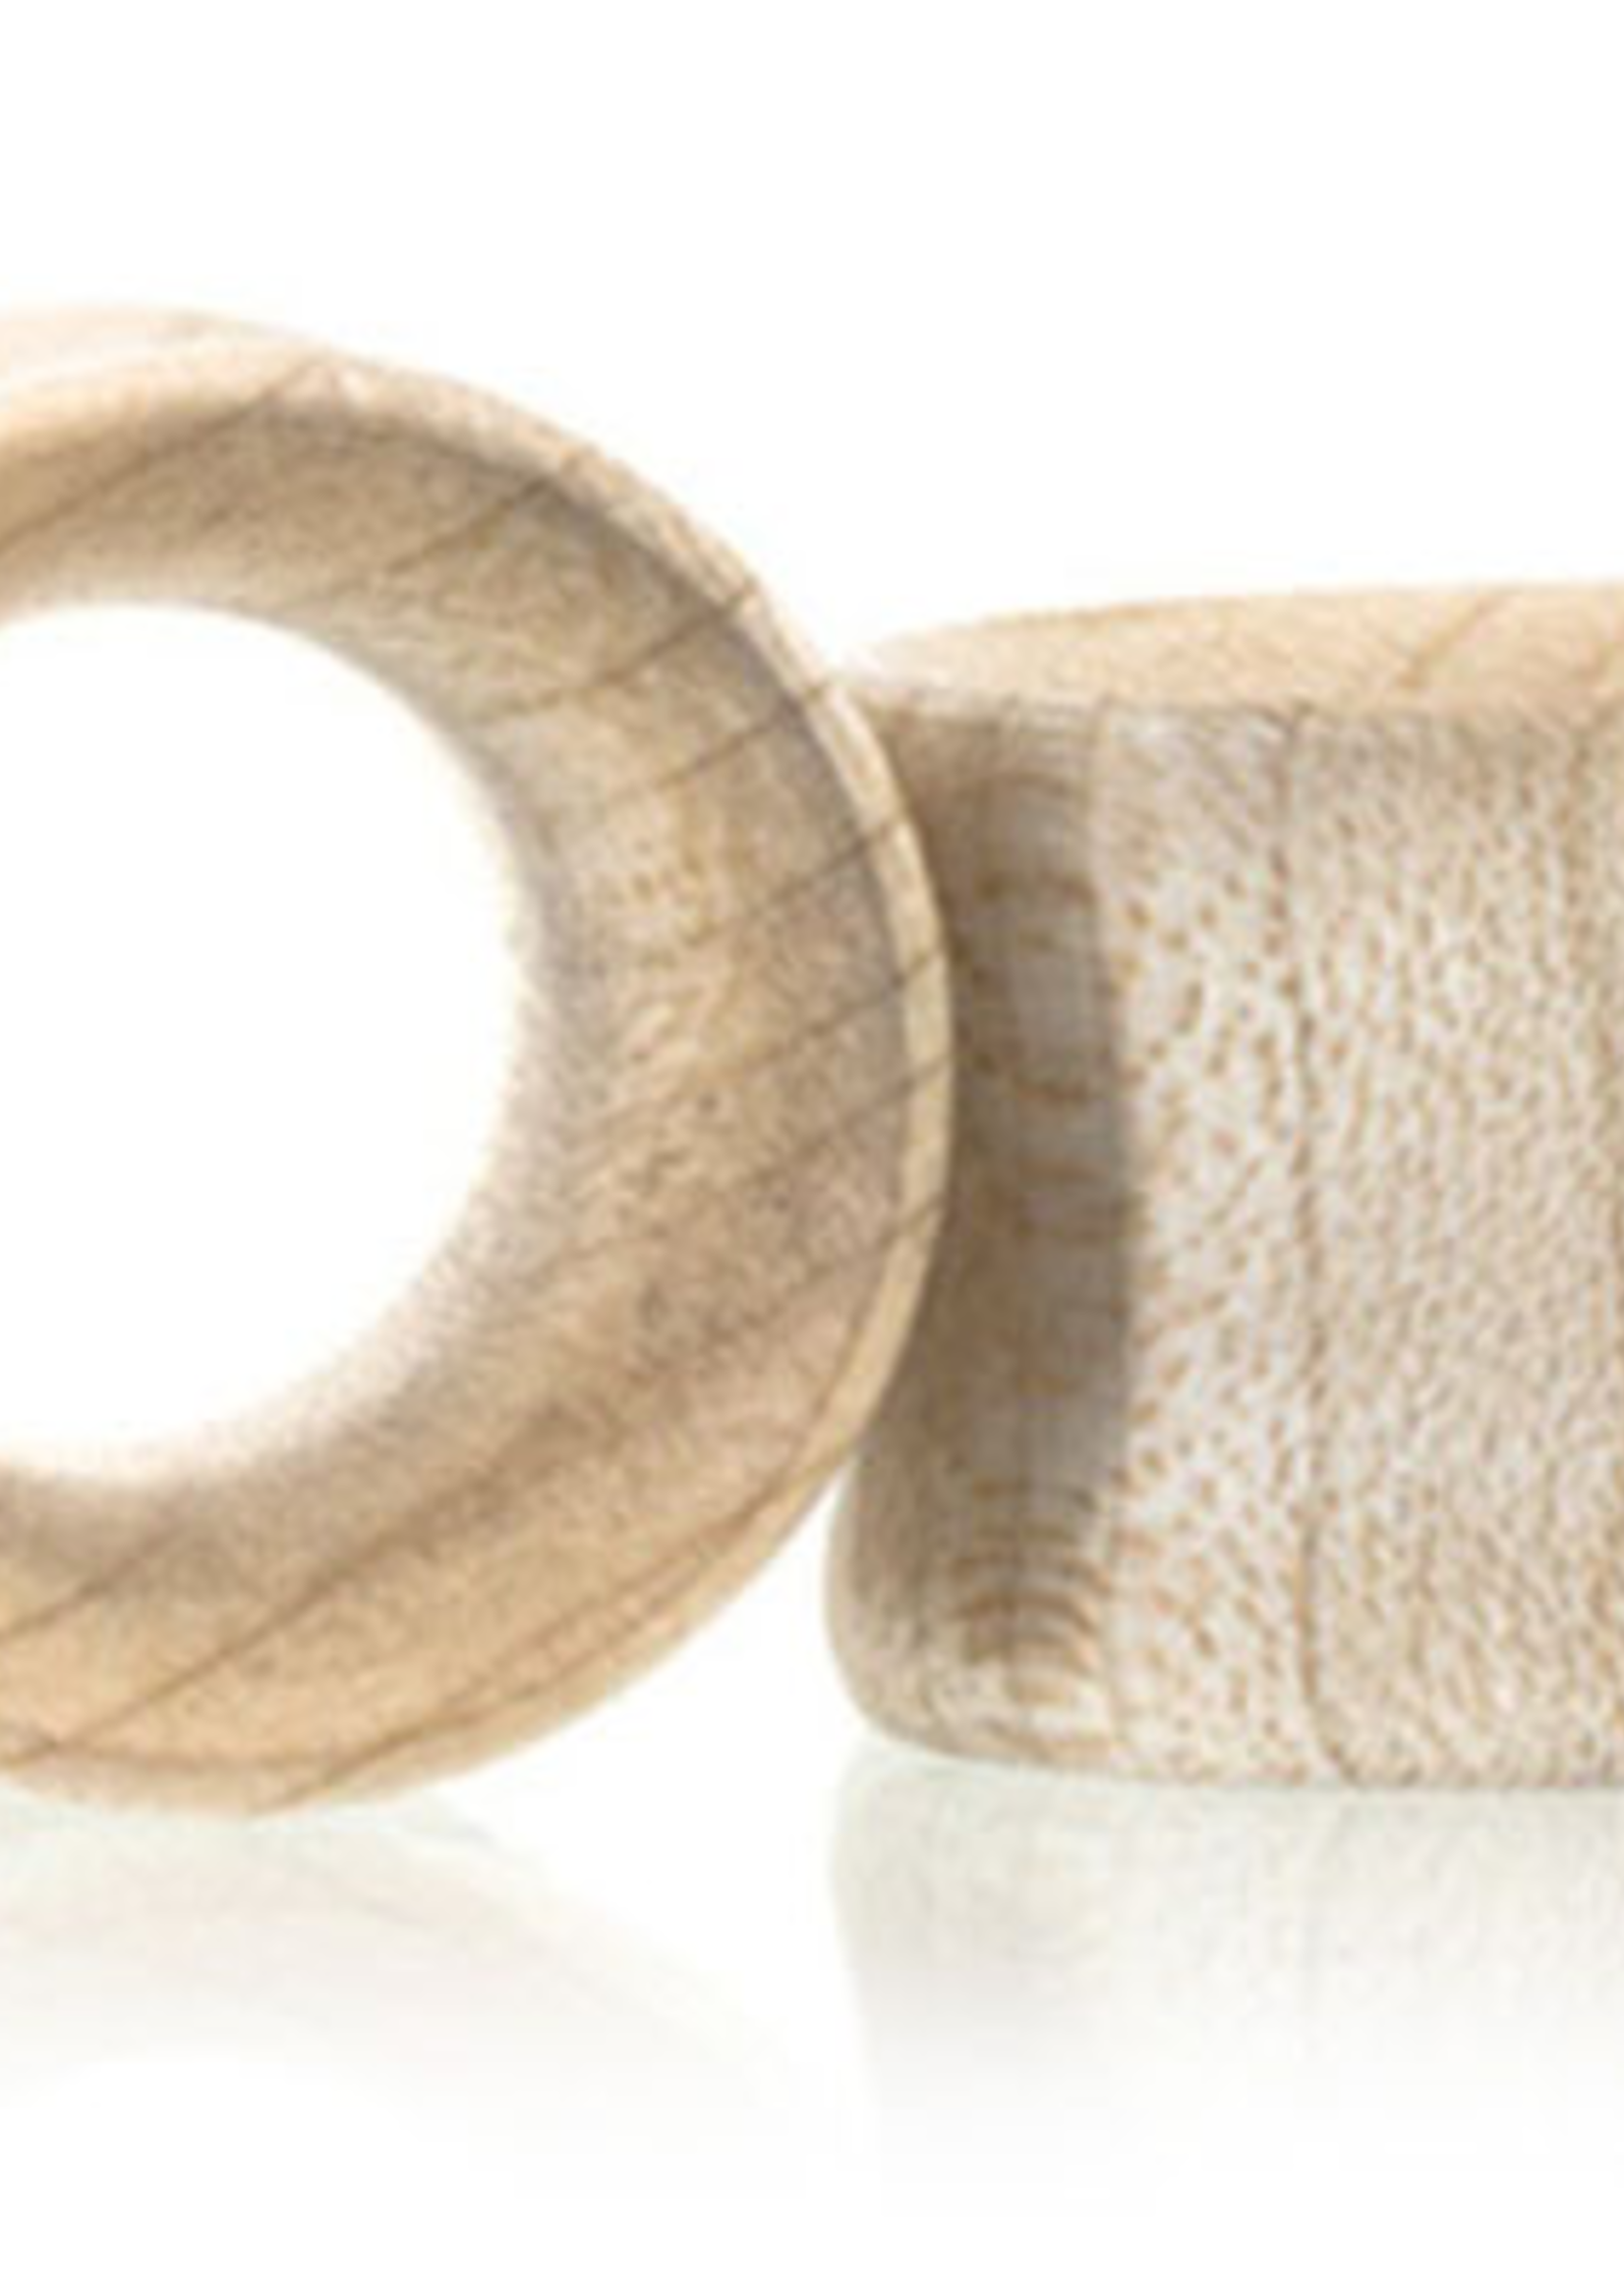 0g Omerica Concave Light Maple Wood Eyelets